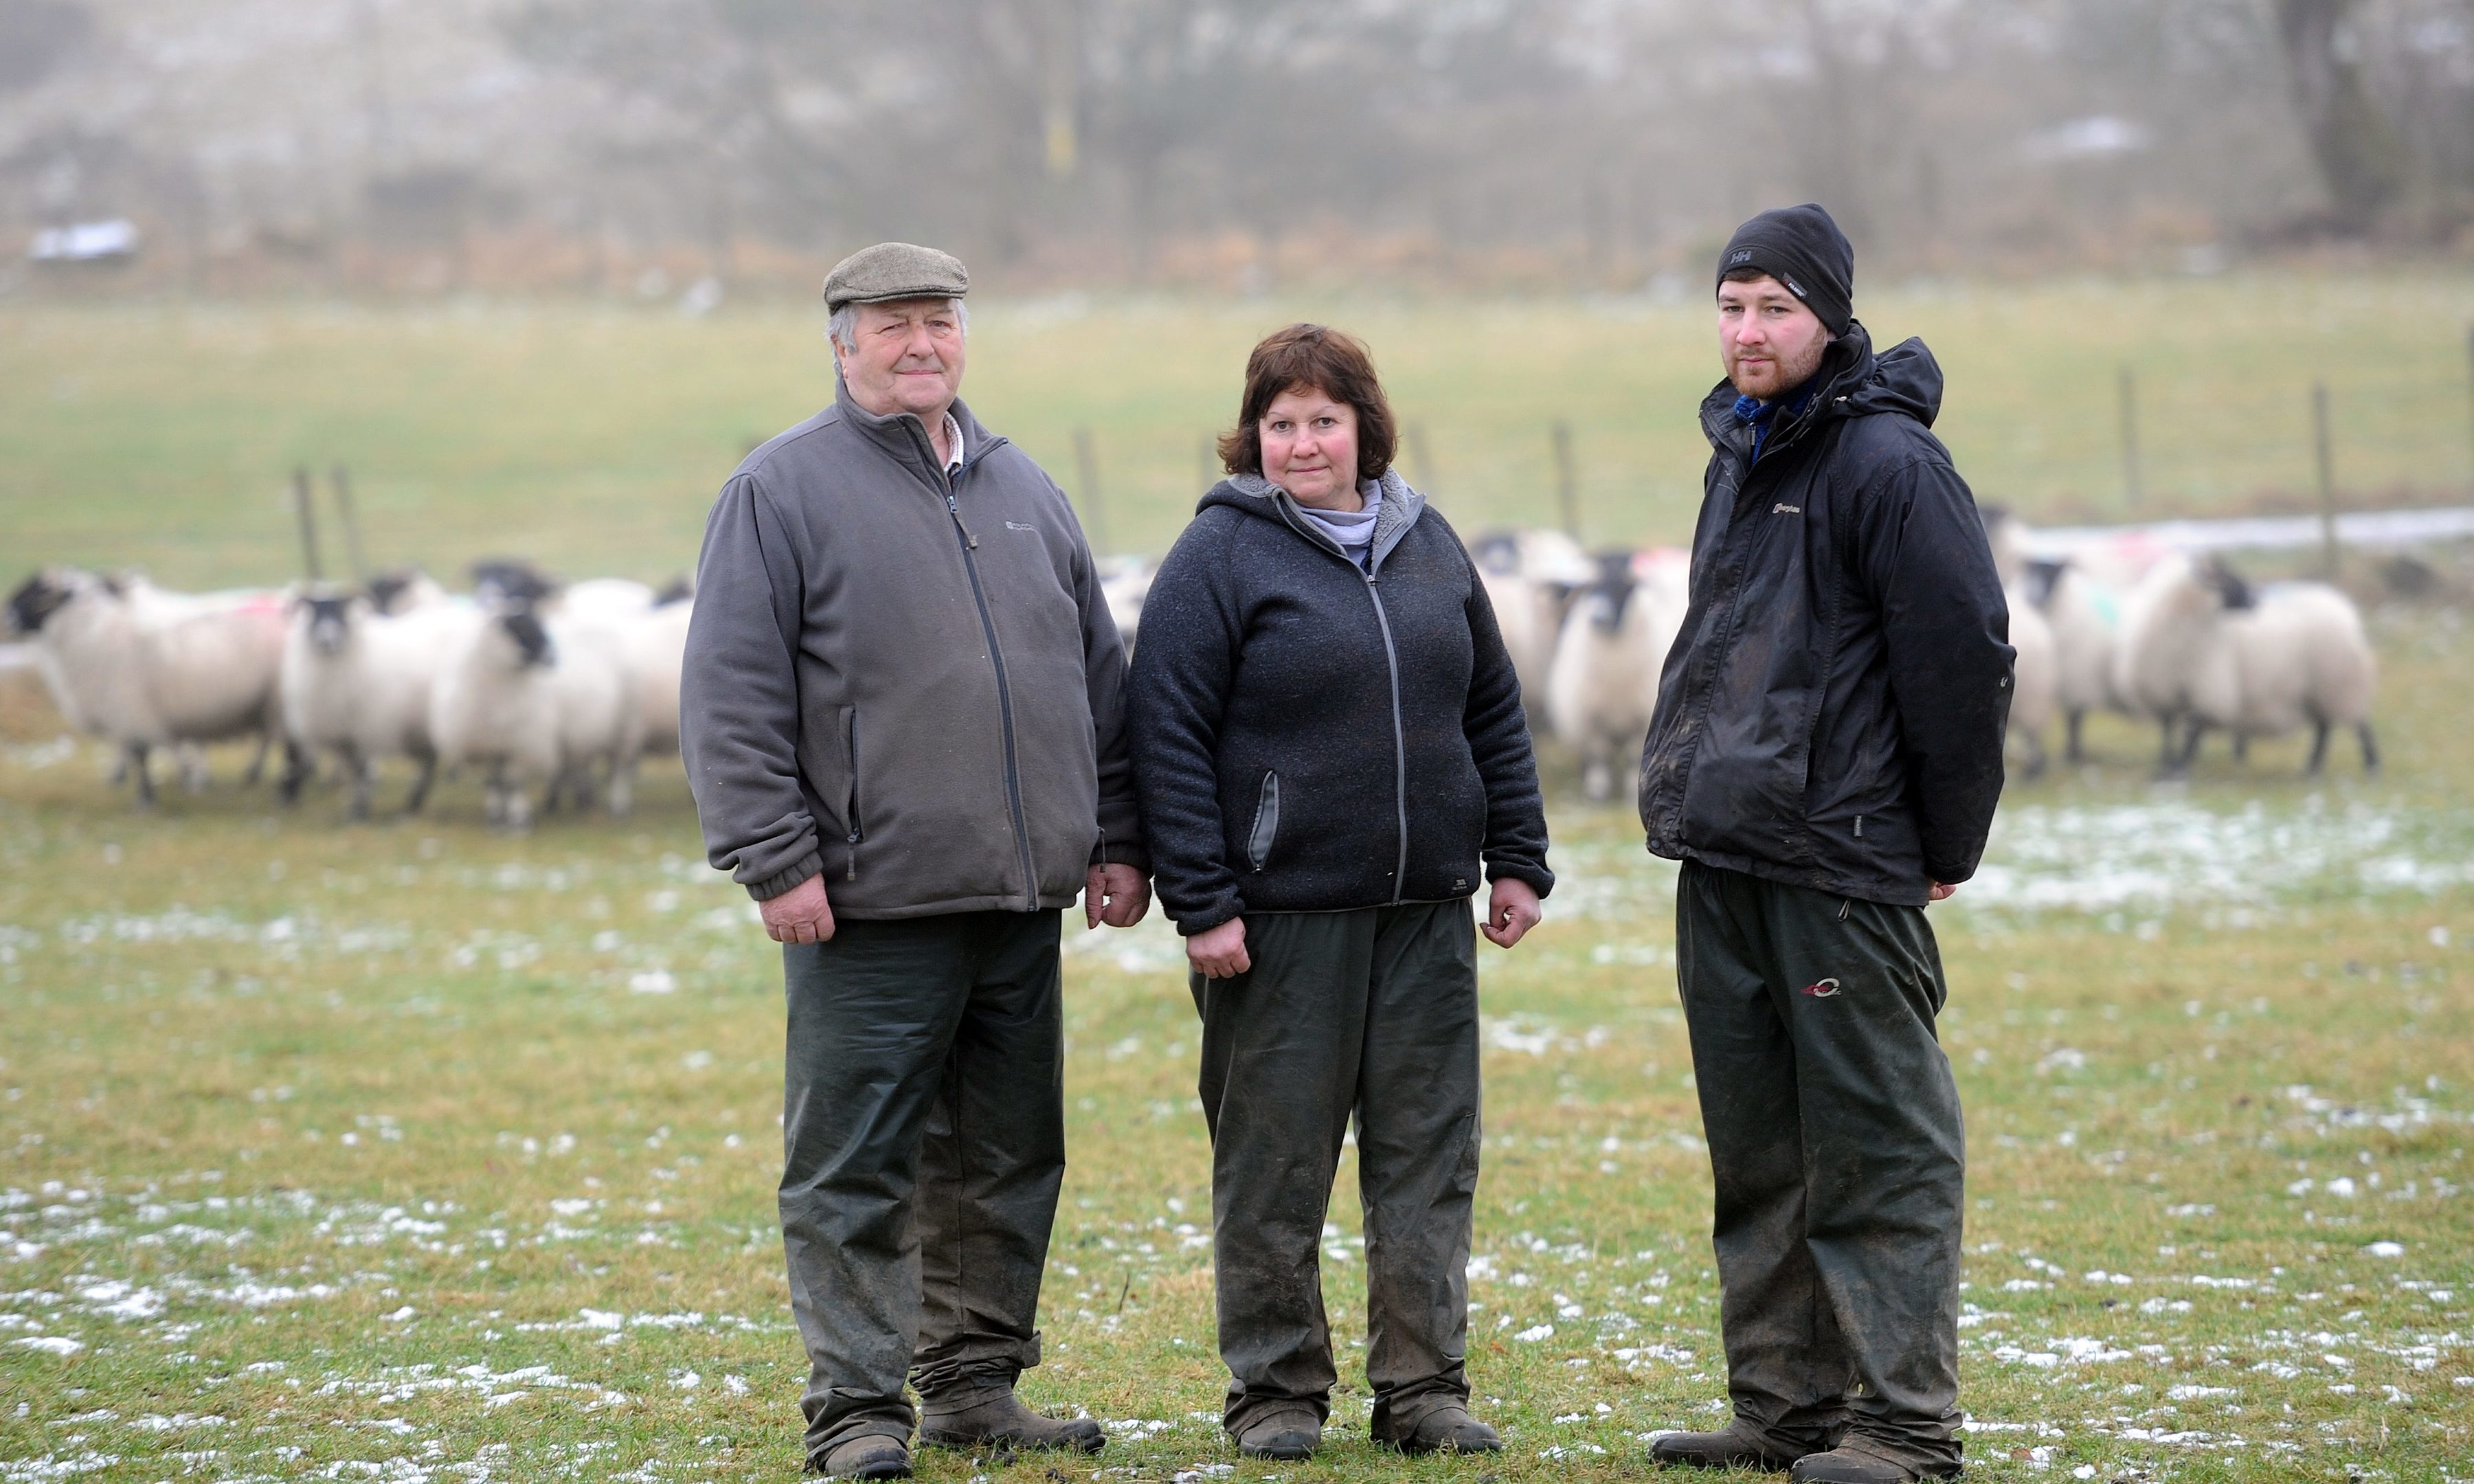 Farmer Tom Paterson and his wife Mairi and son Robert. They saw the effects of sheep worrying first hand when their flock of prize sheep were attacked.